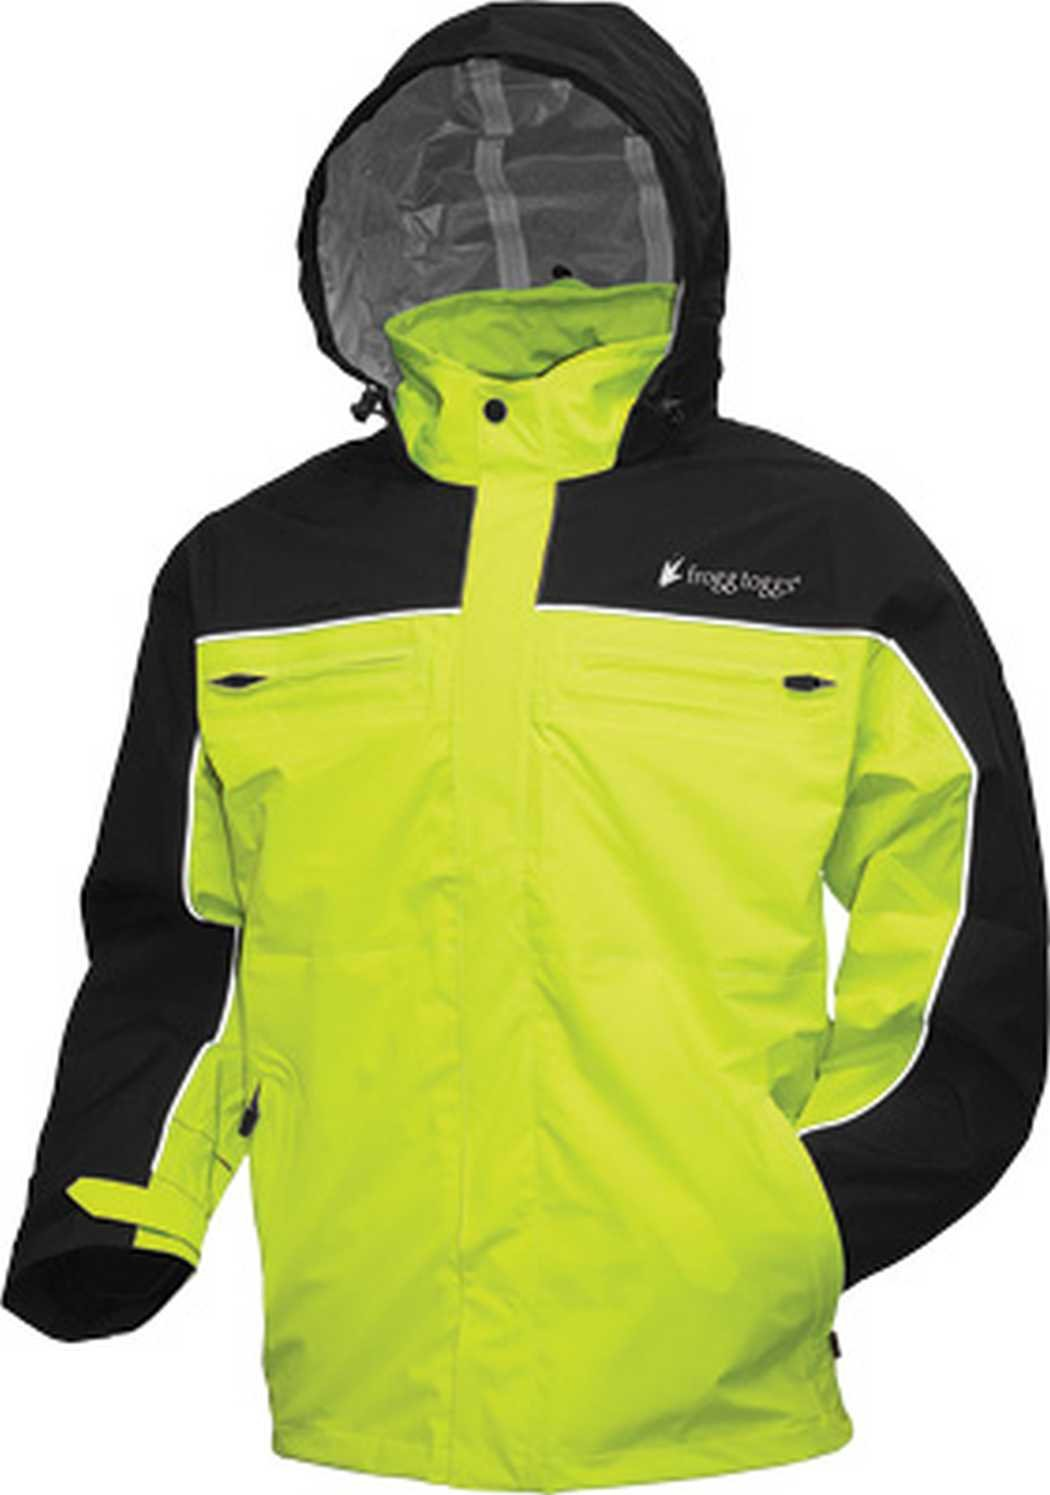 Frogg Toggs Pilot Cruiser Jacket, Black/Hi-Viz Green, Medium